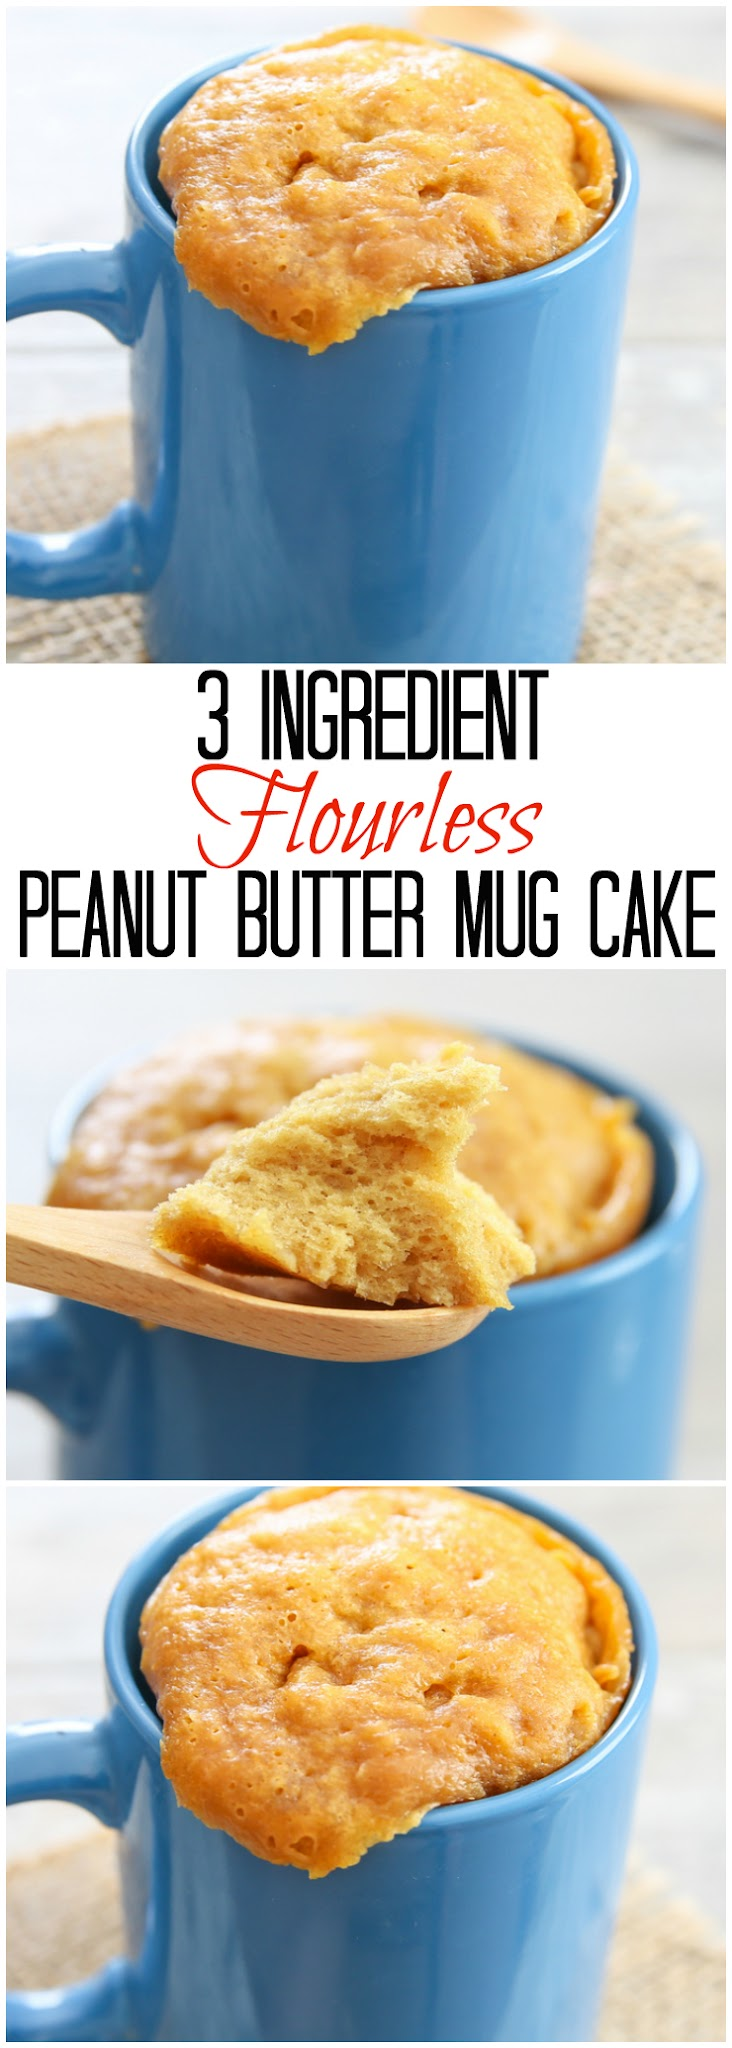 3 Ingredient Flourless Peanut Butter Mug Cake